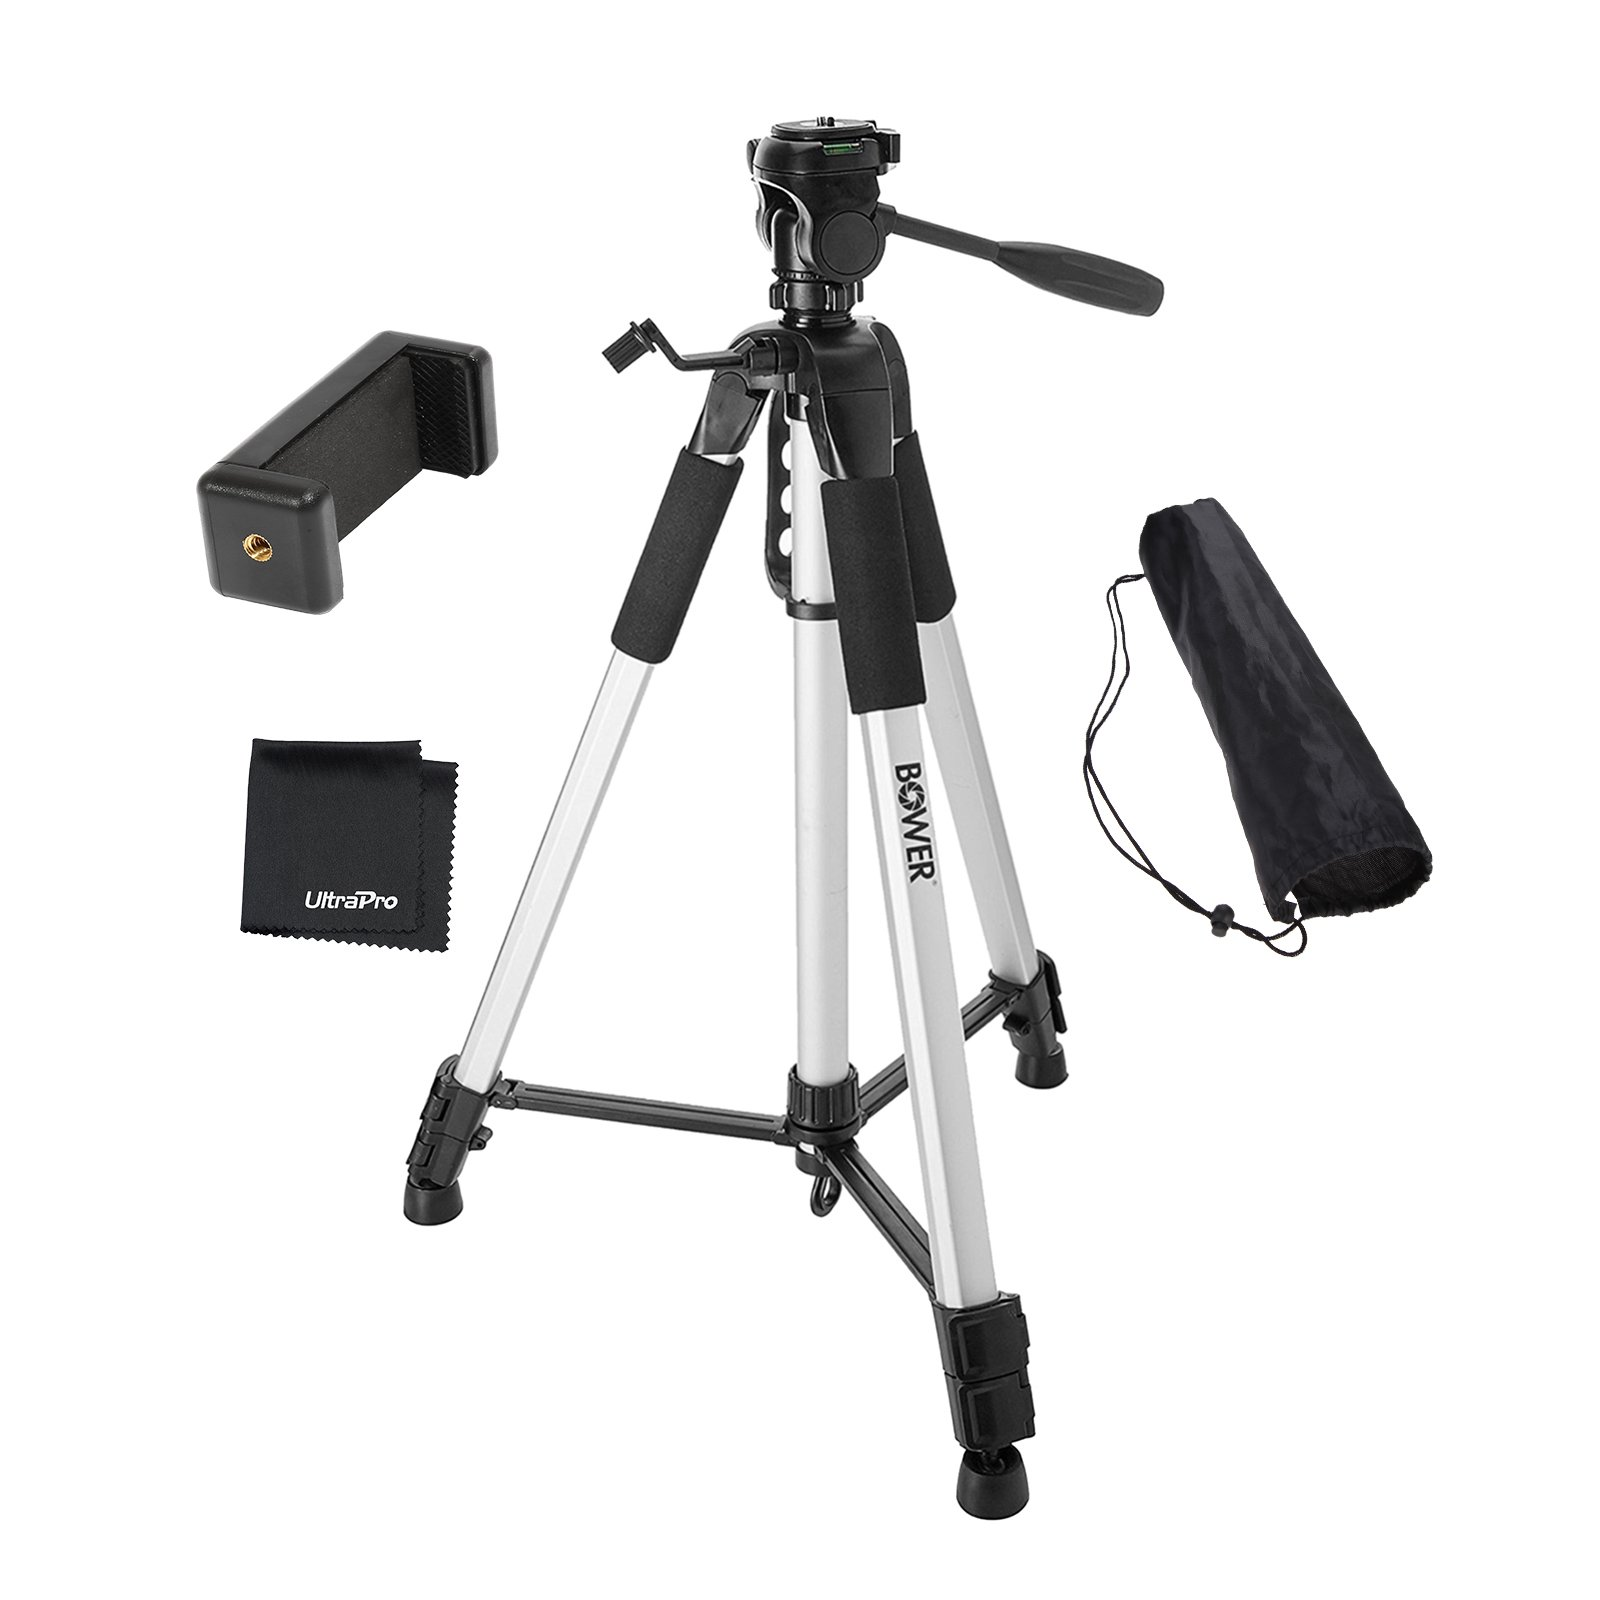 UltraPro 72'' Inch Heavy-Duty Aluminum Camera Tripod with Universal Smartphone Mount for iPhone, Samsung, and All Smartphones, Includes UltraPro Bonus Microfiber Cleaning Cloth by UltraPro